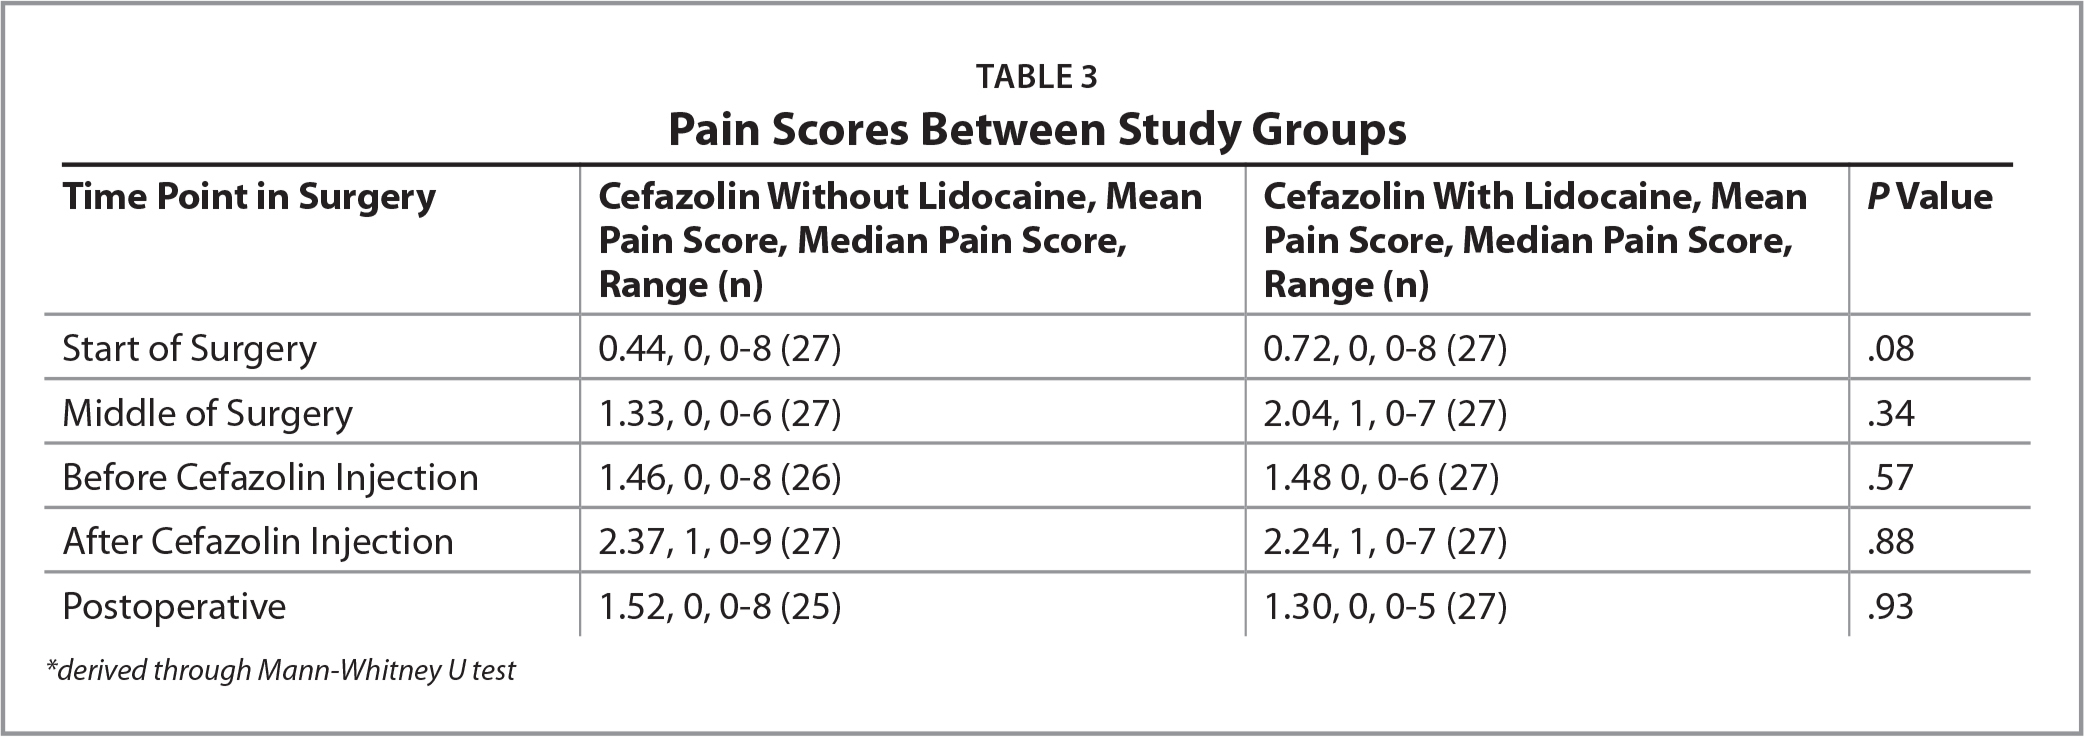 Pain Scores Between Study Groups